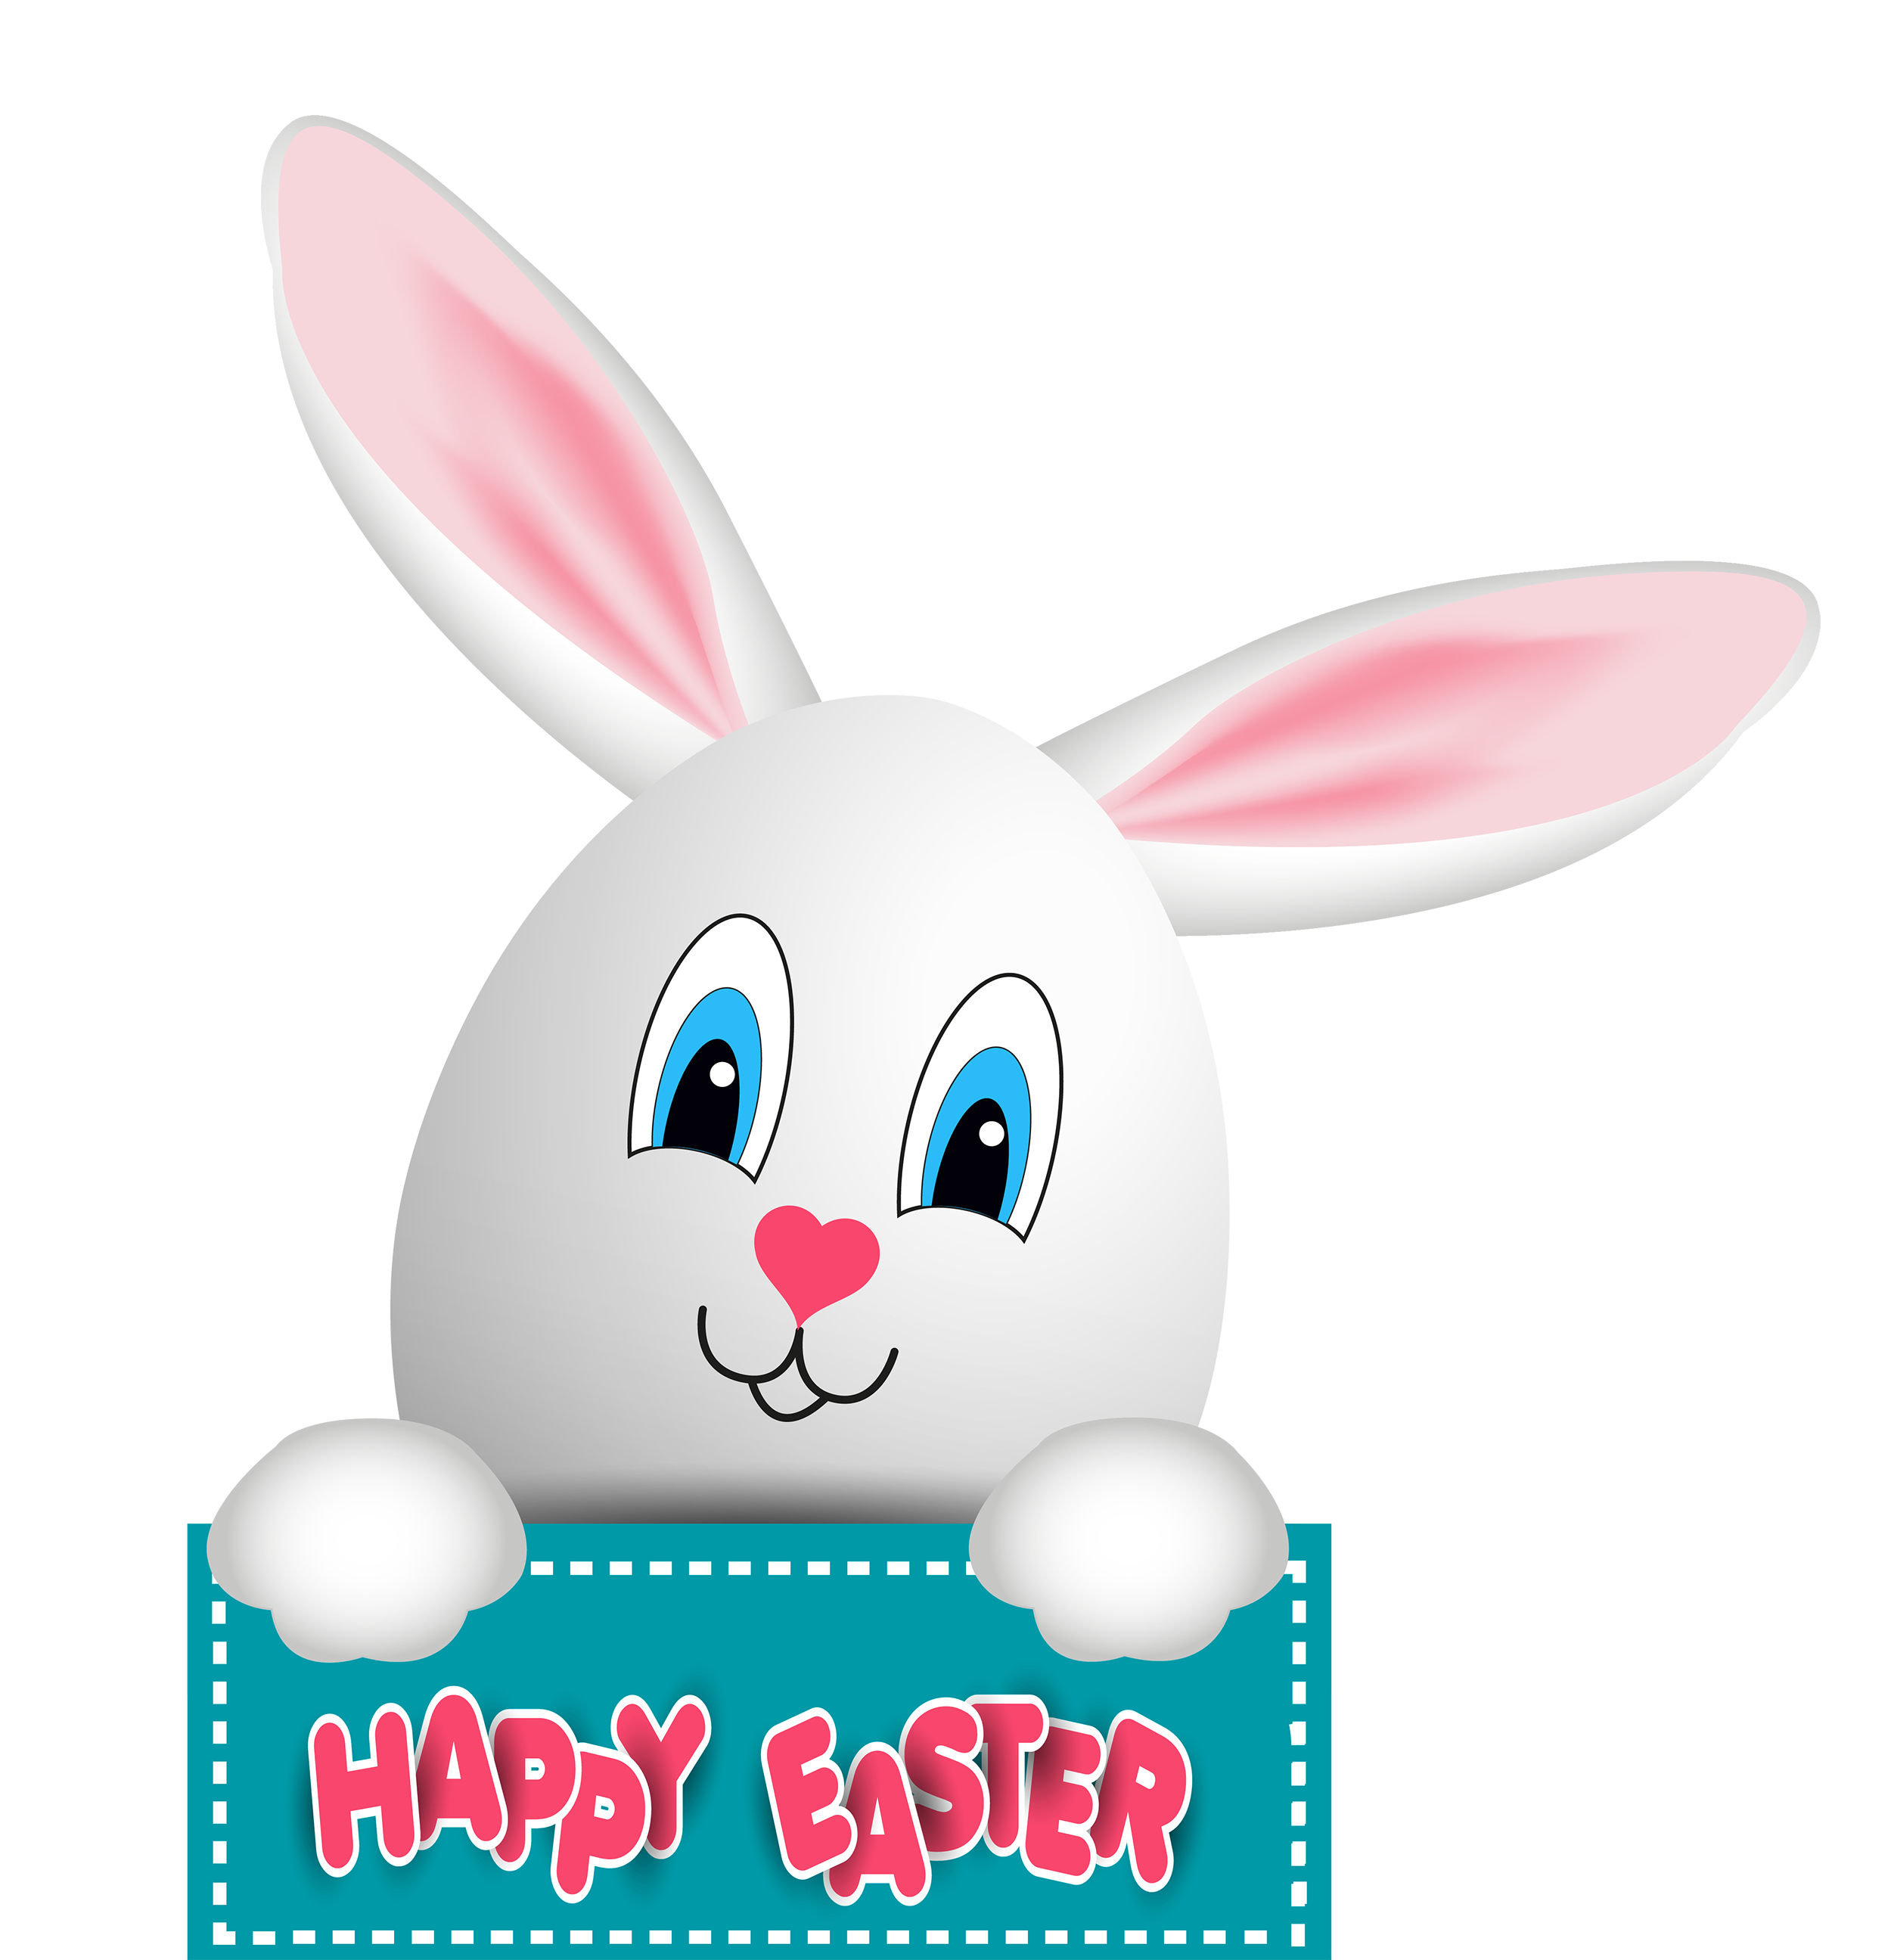 PNG File Name: Easter Bunny PlusPng.com  - Easter Bunny PNG